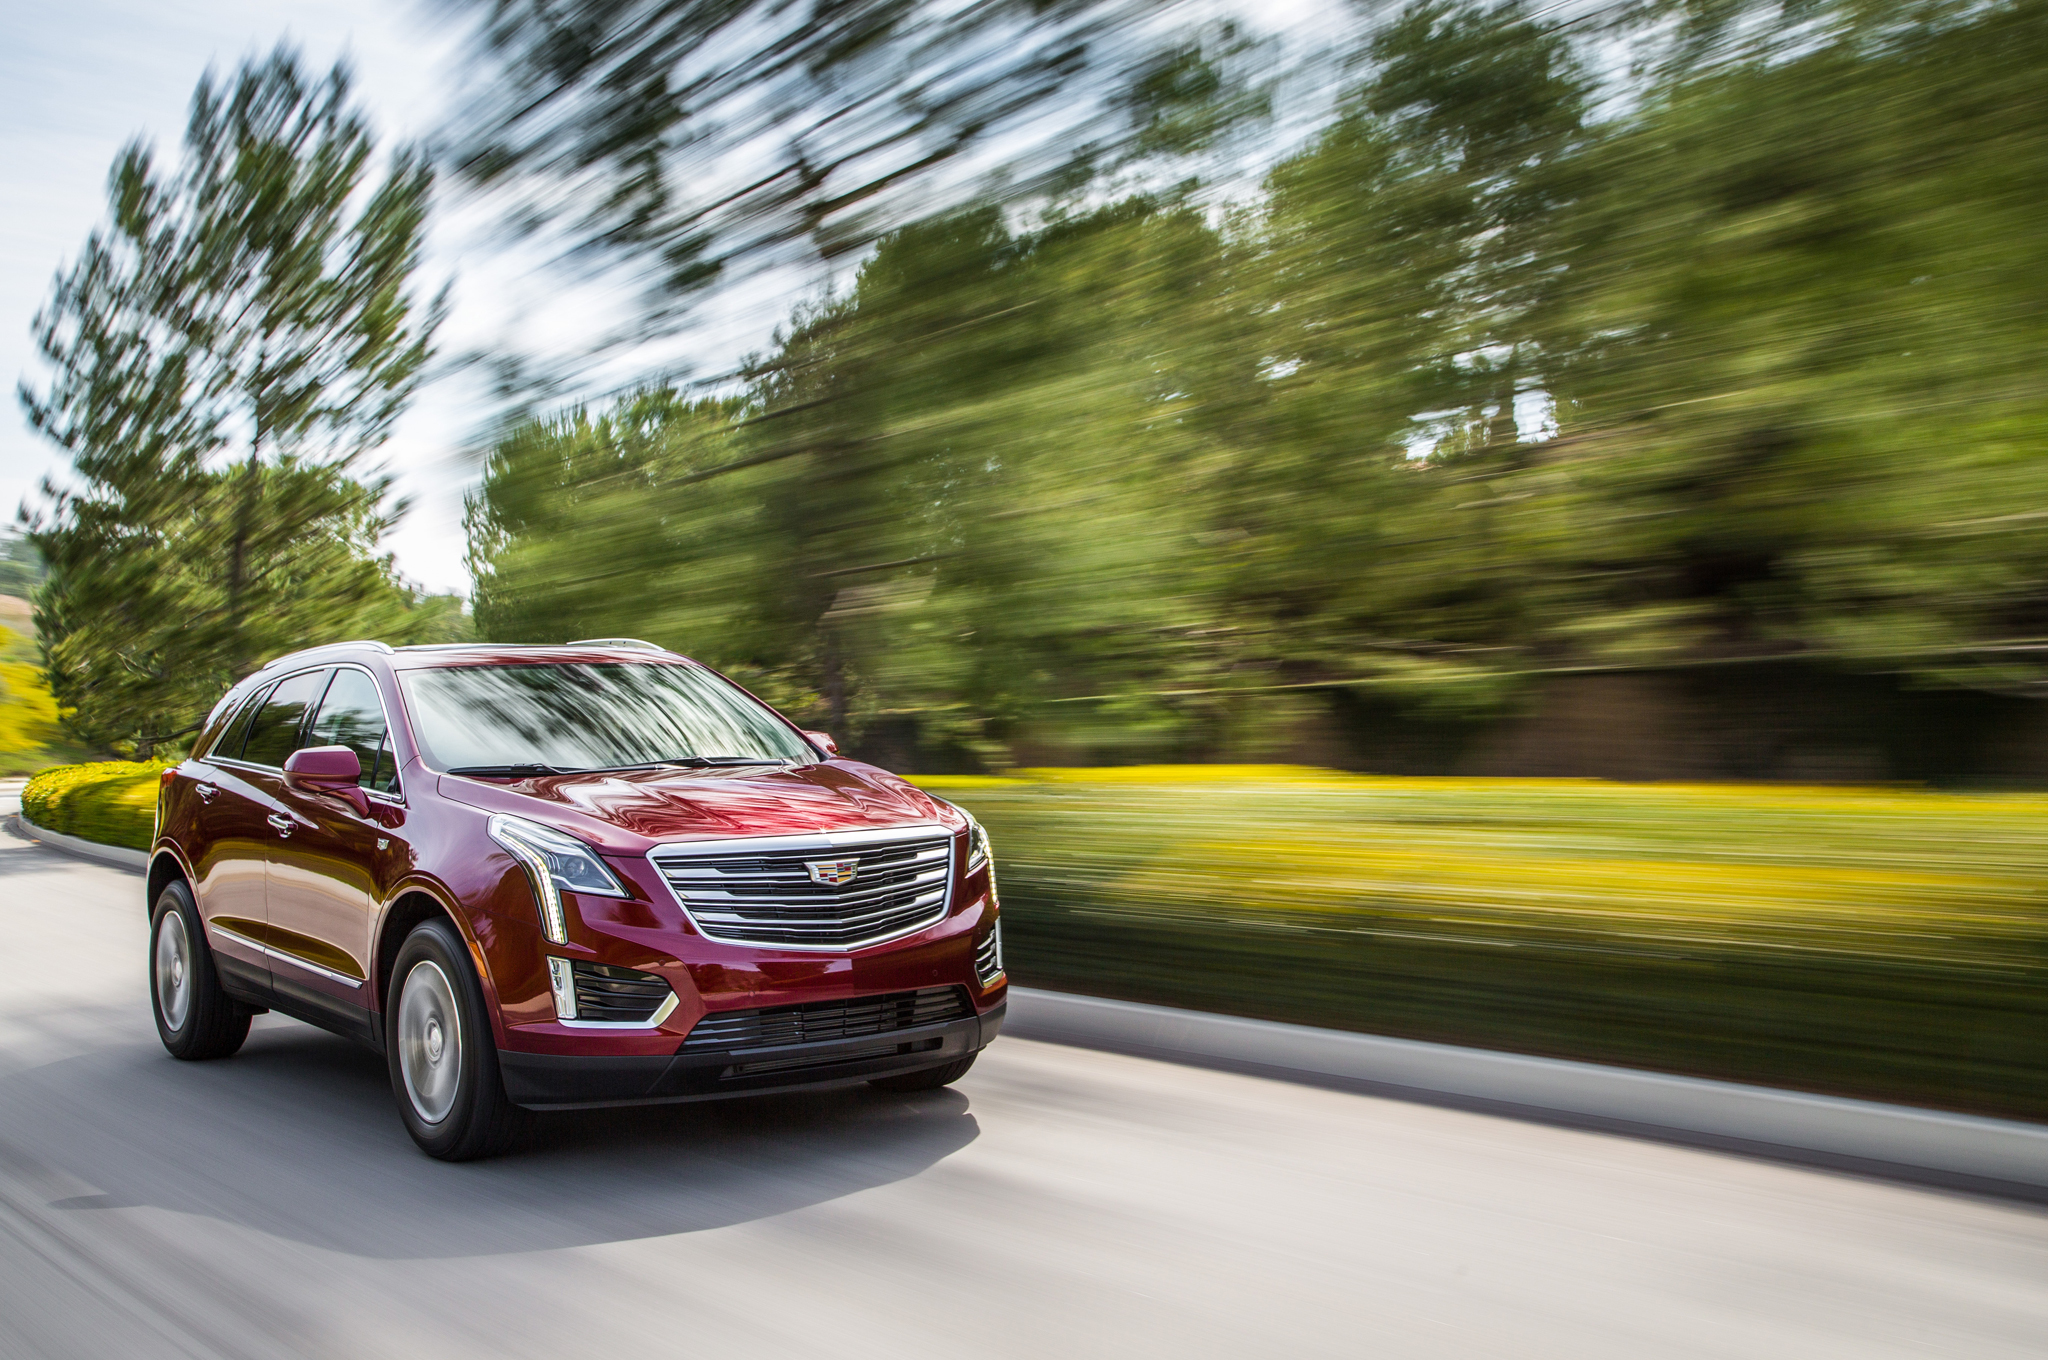 Cadillac Xt4 Wallpapers Images Photos Pictures Backgrounds